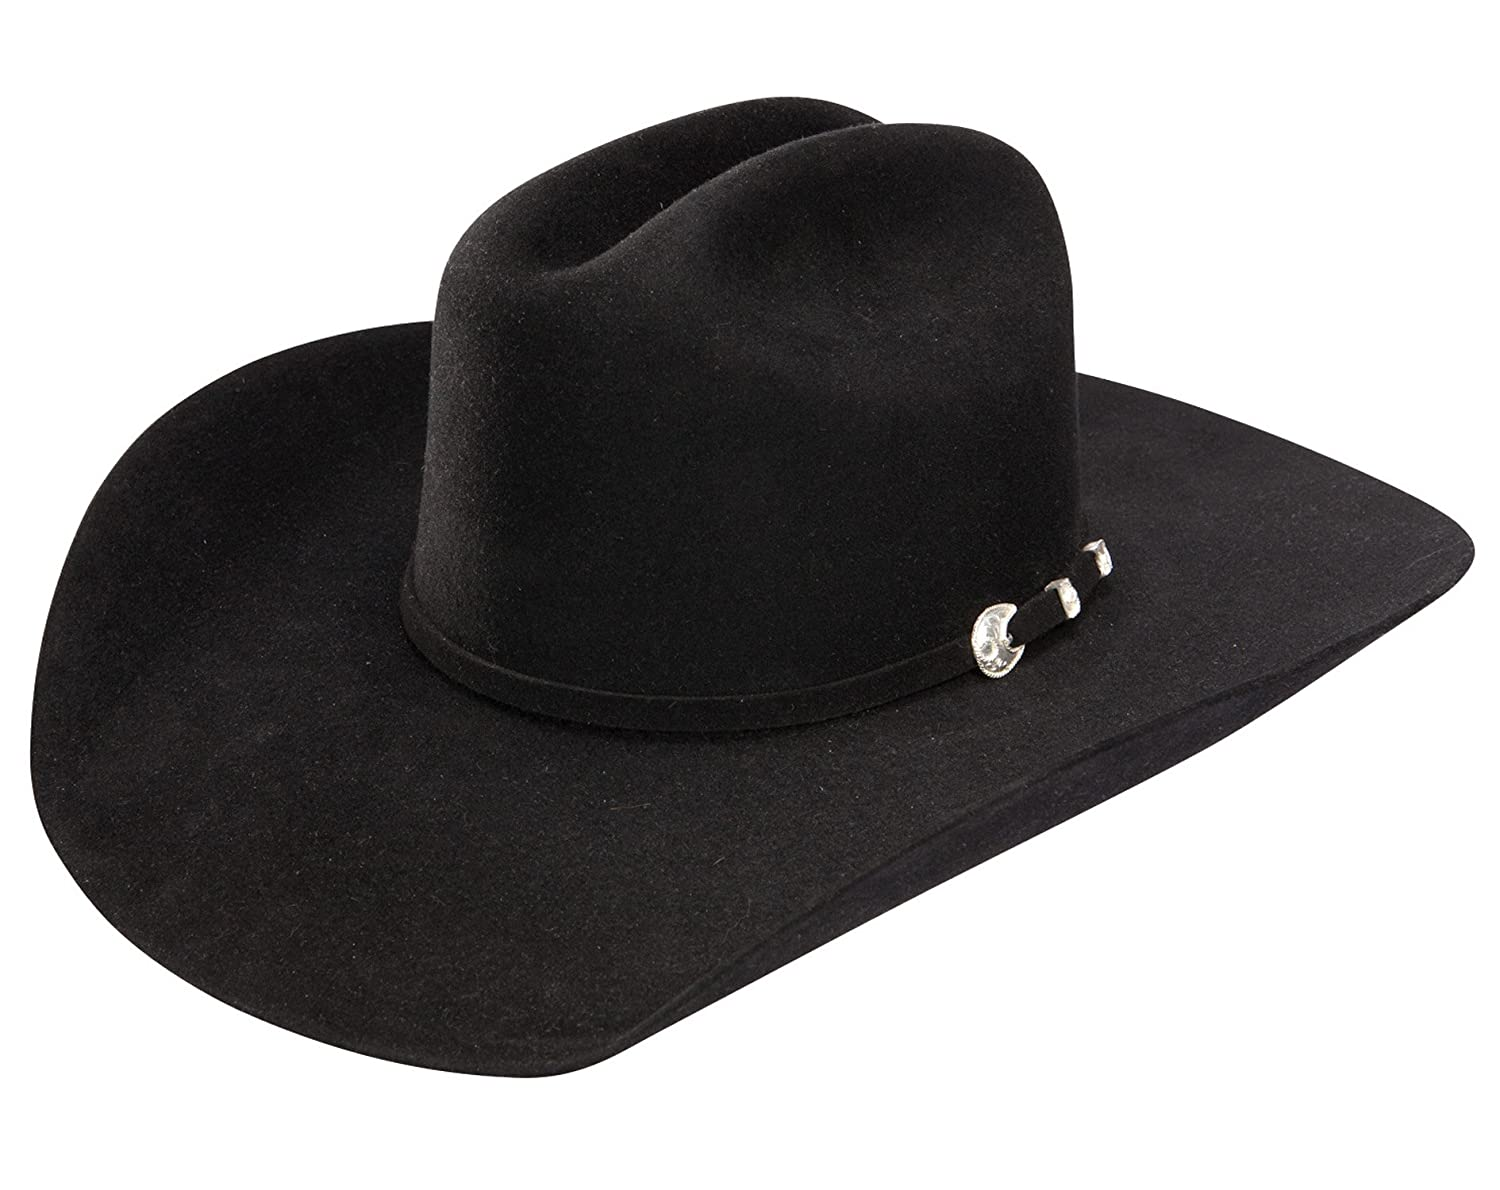 b3a86a09a34 Stetson SBCRAL-9442 Corral Hat at Amazon Men s Clothing store